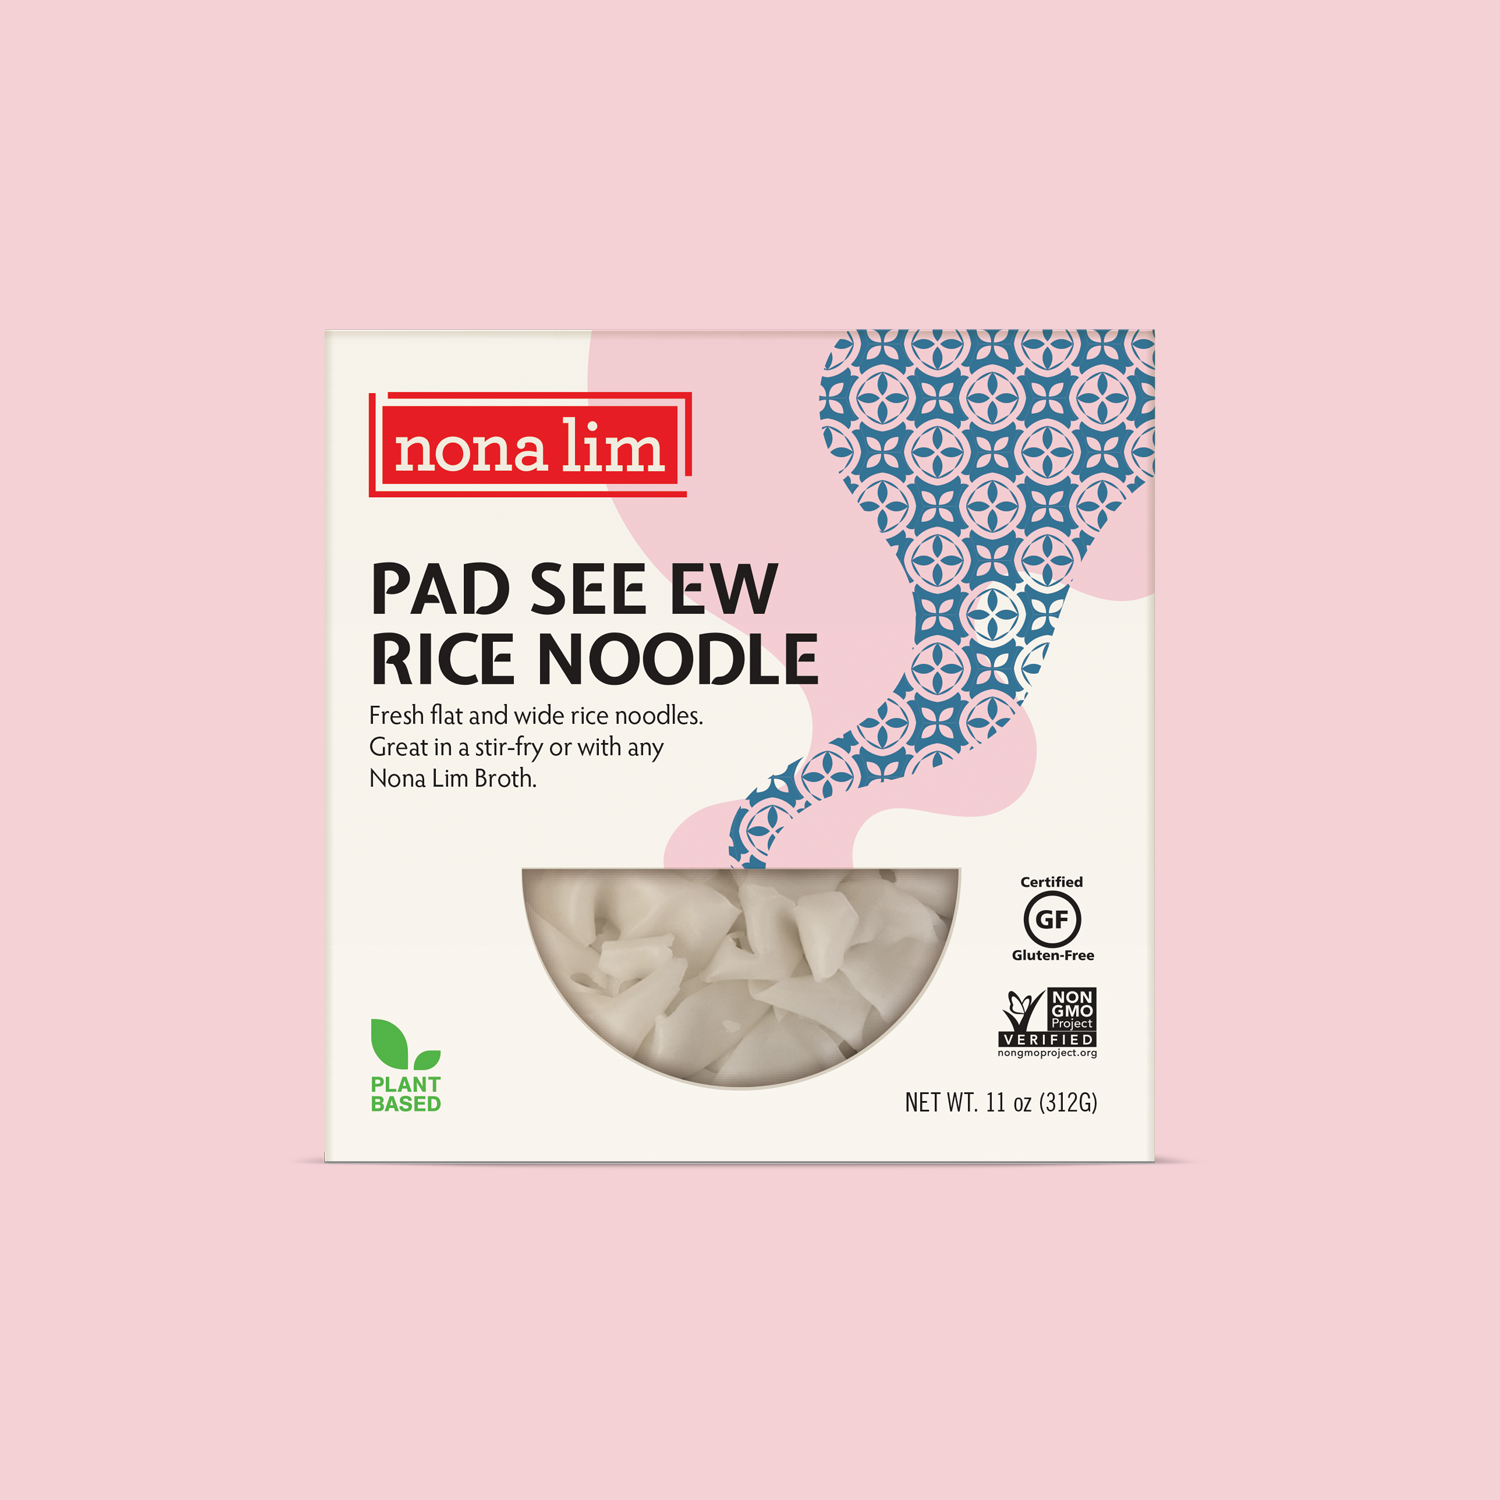 Nona Lim flat wide gluten free Rice Noodles